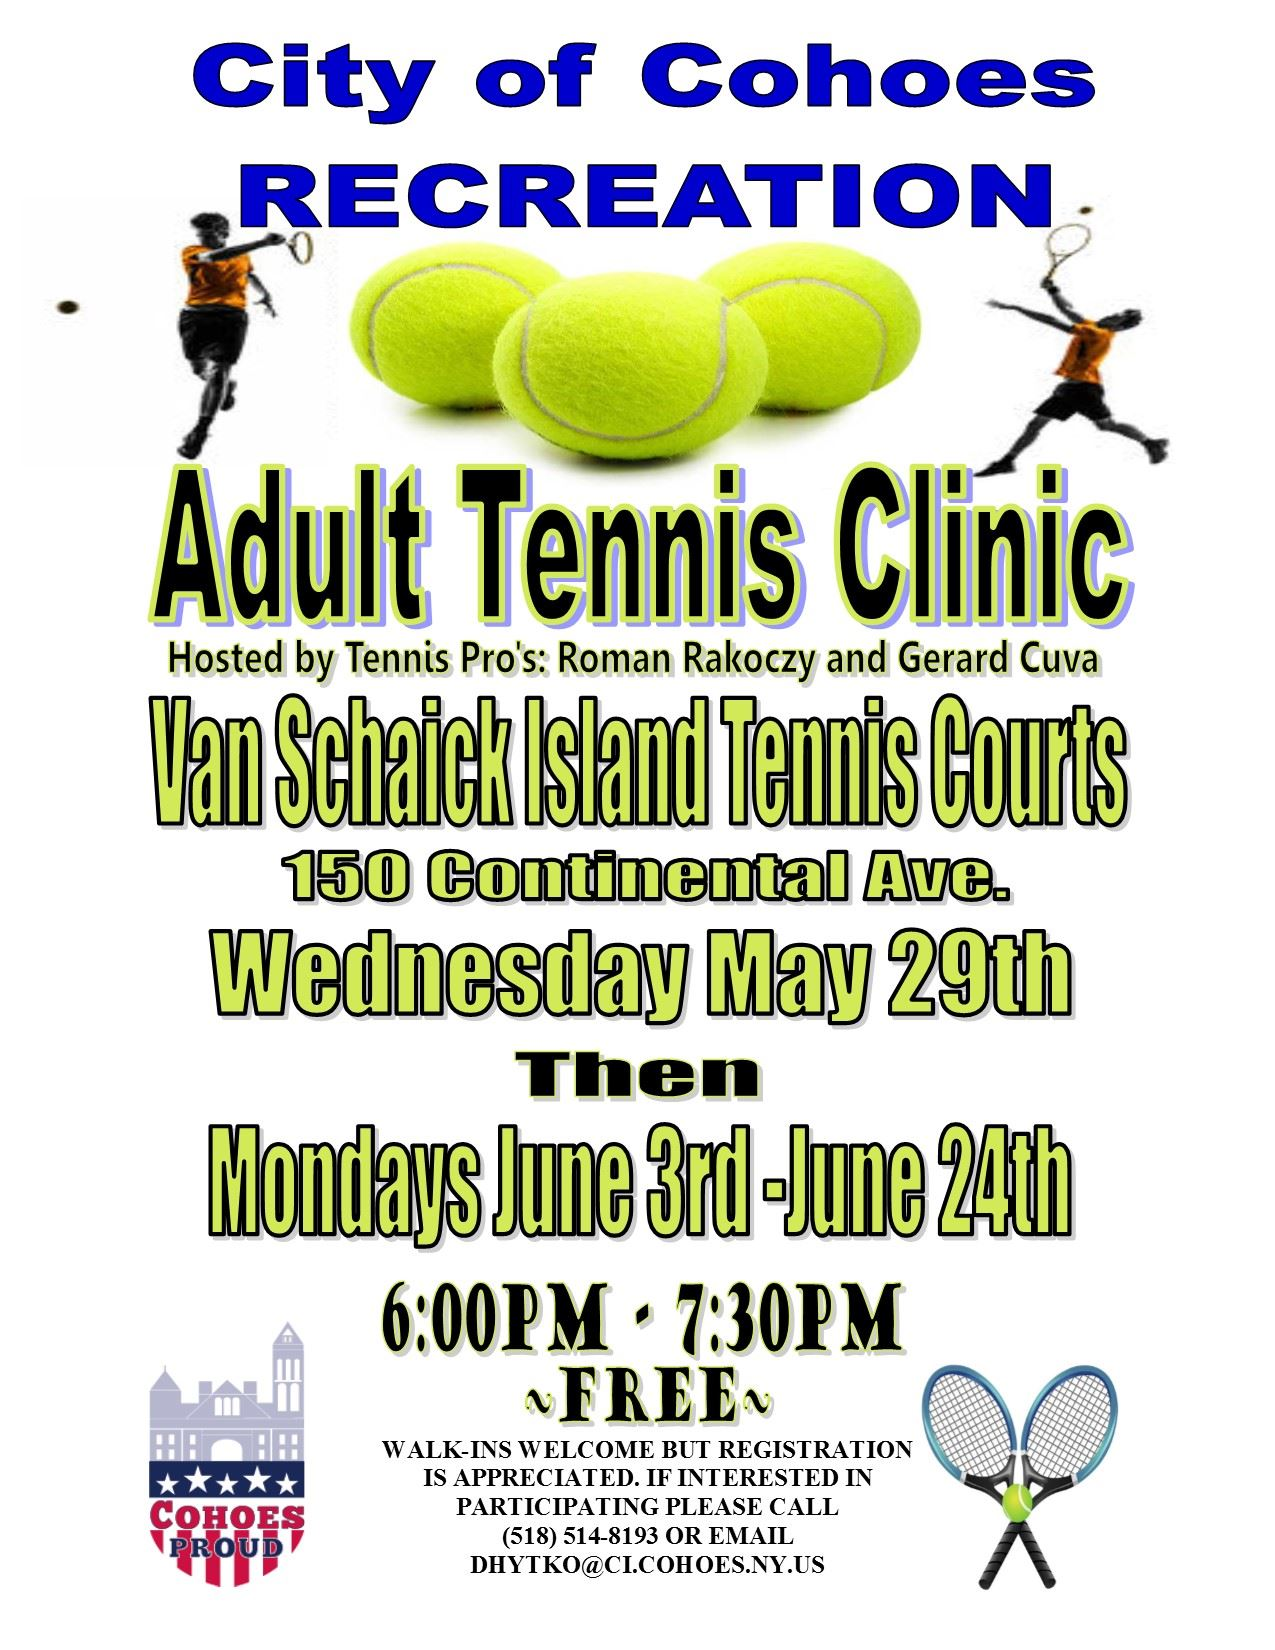 Adult Tennis Clinic